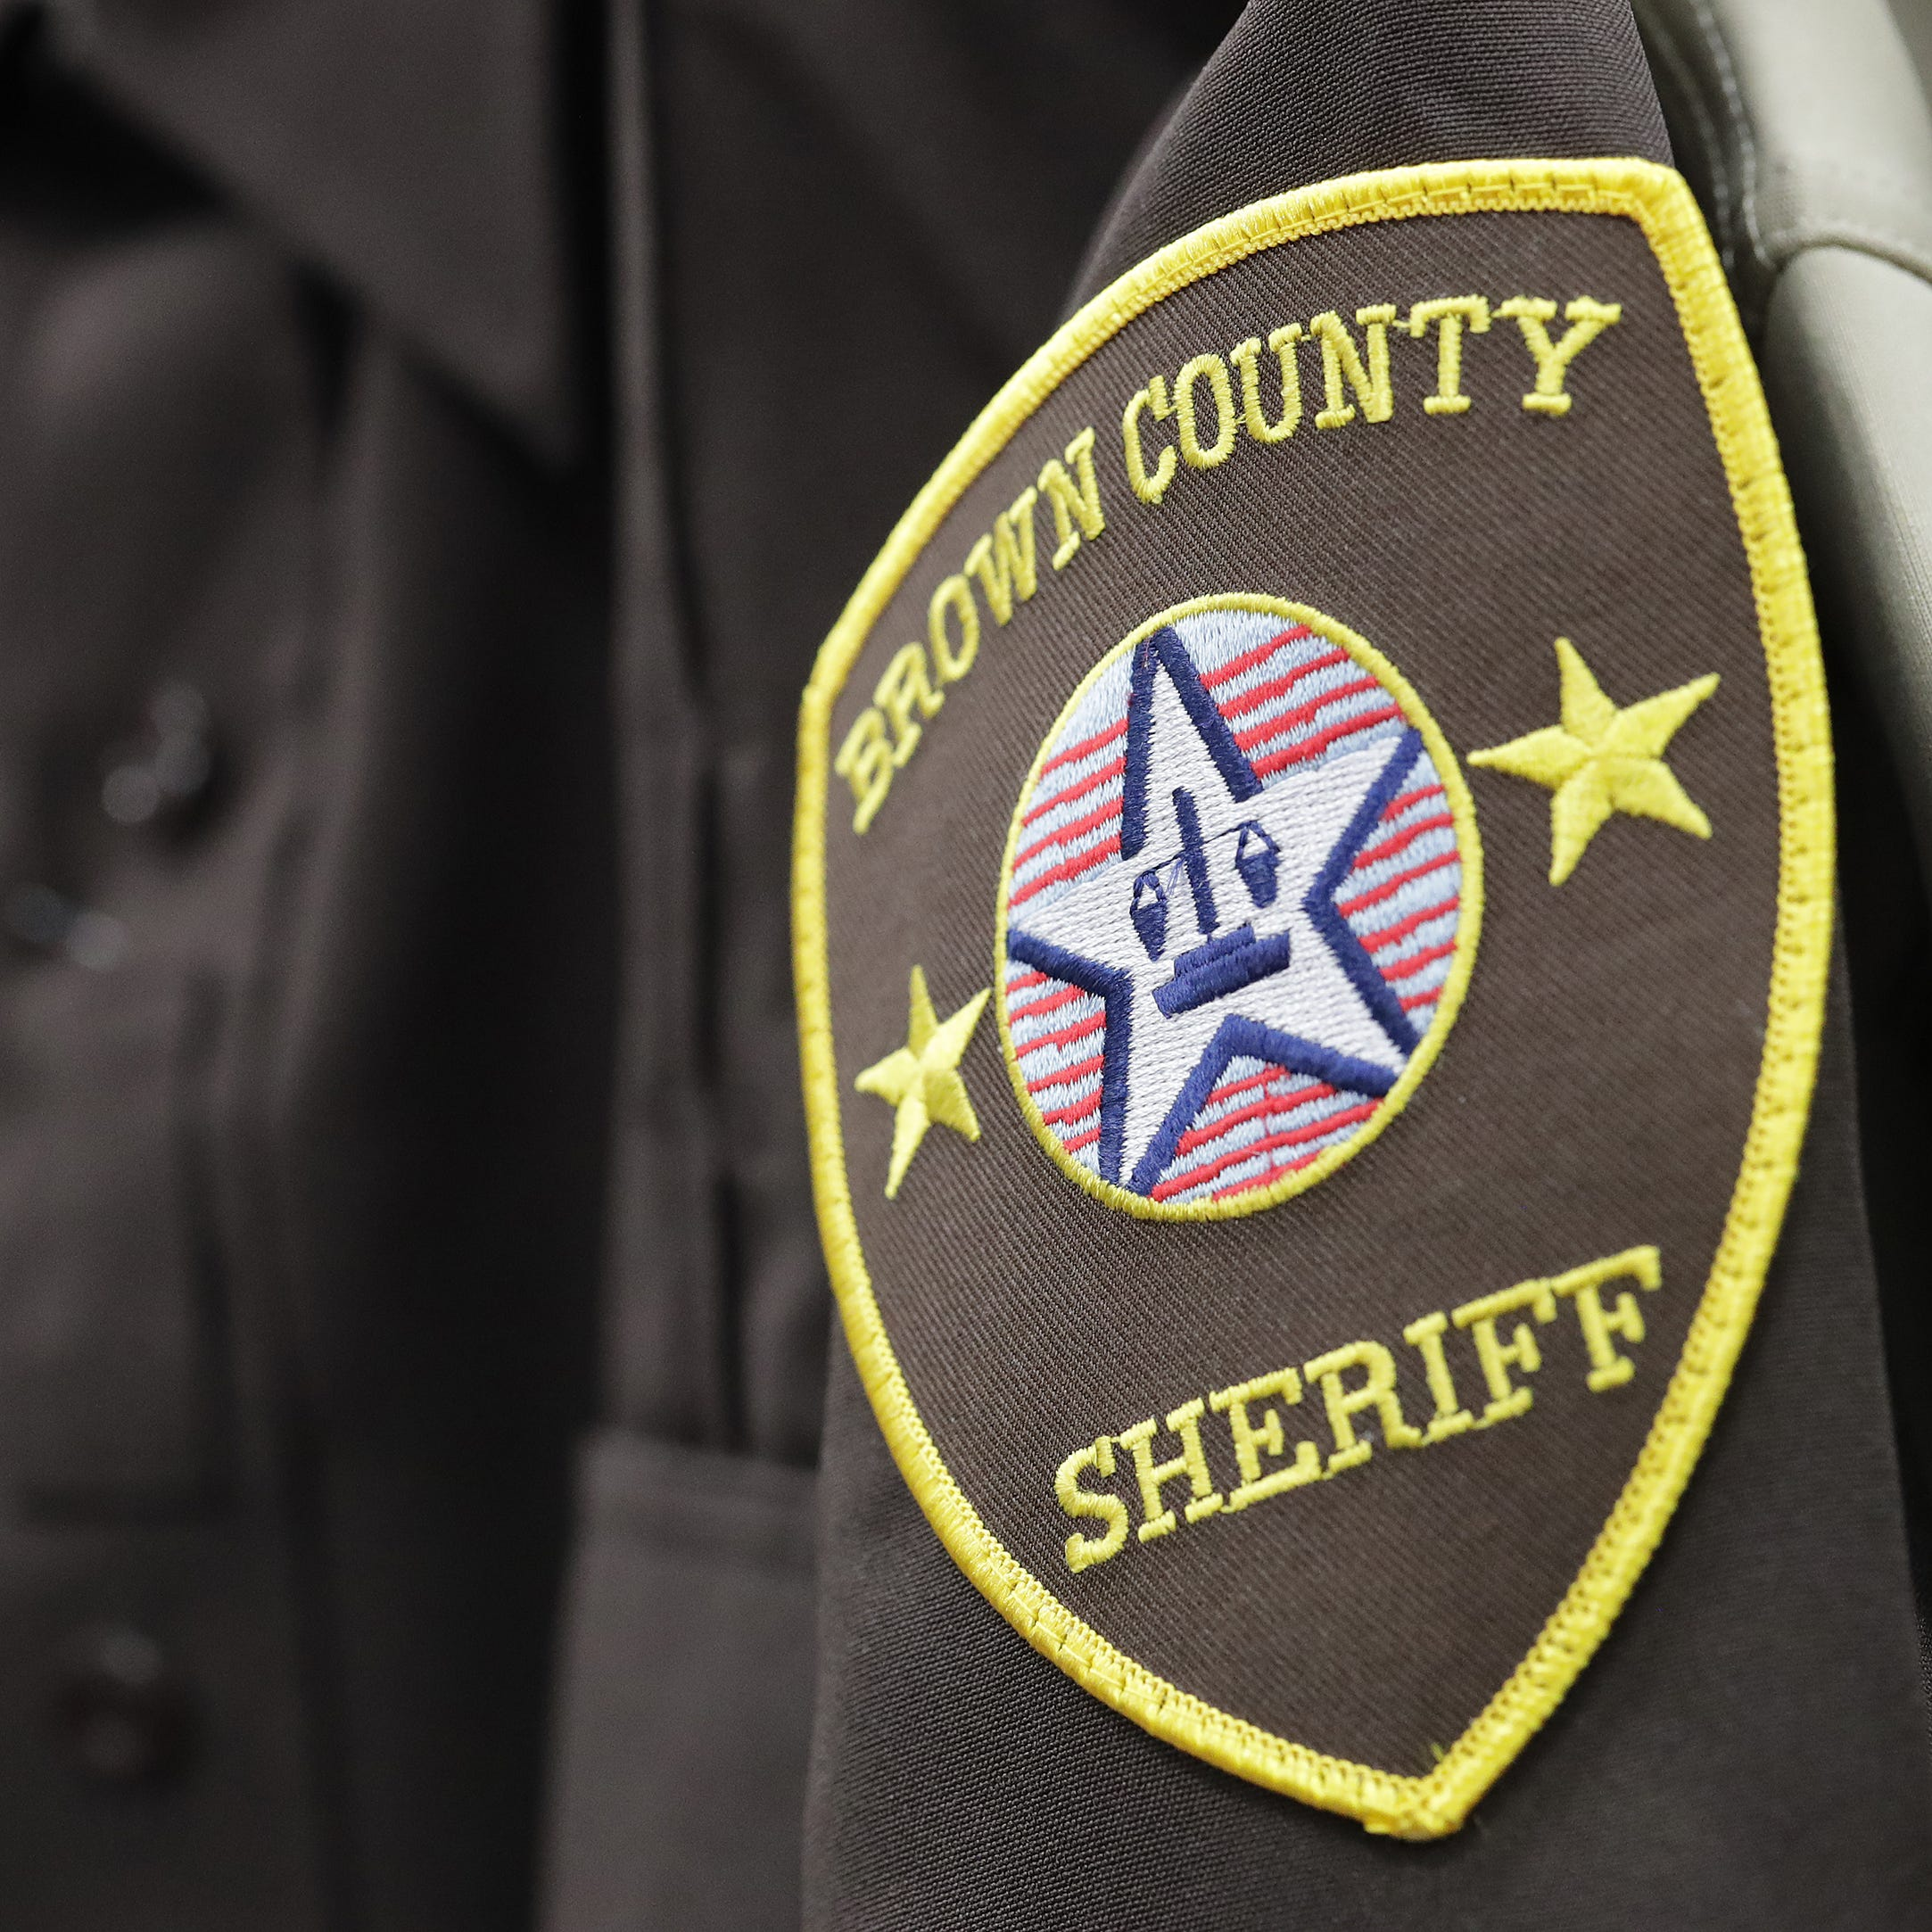 Under the influence, not under arrest: Sheriff's officers reported to work drunk